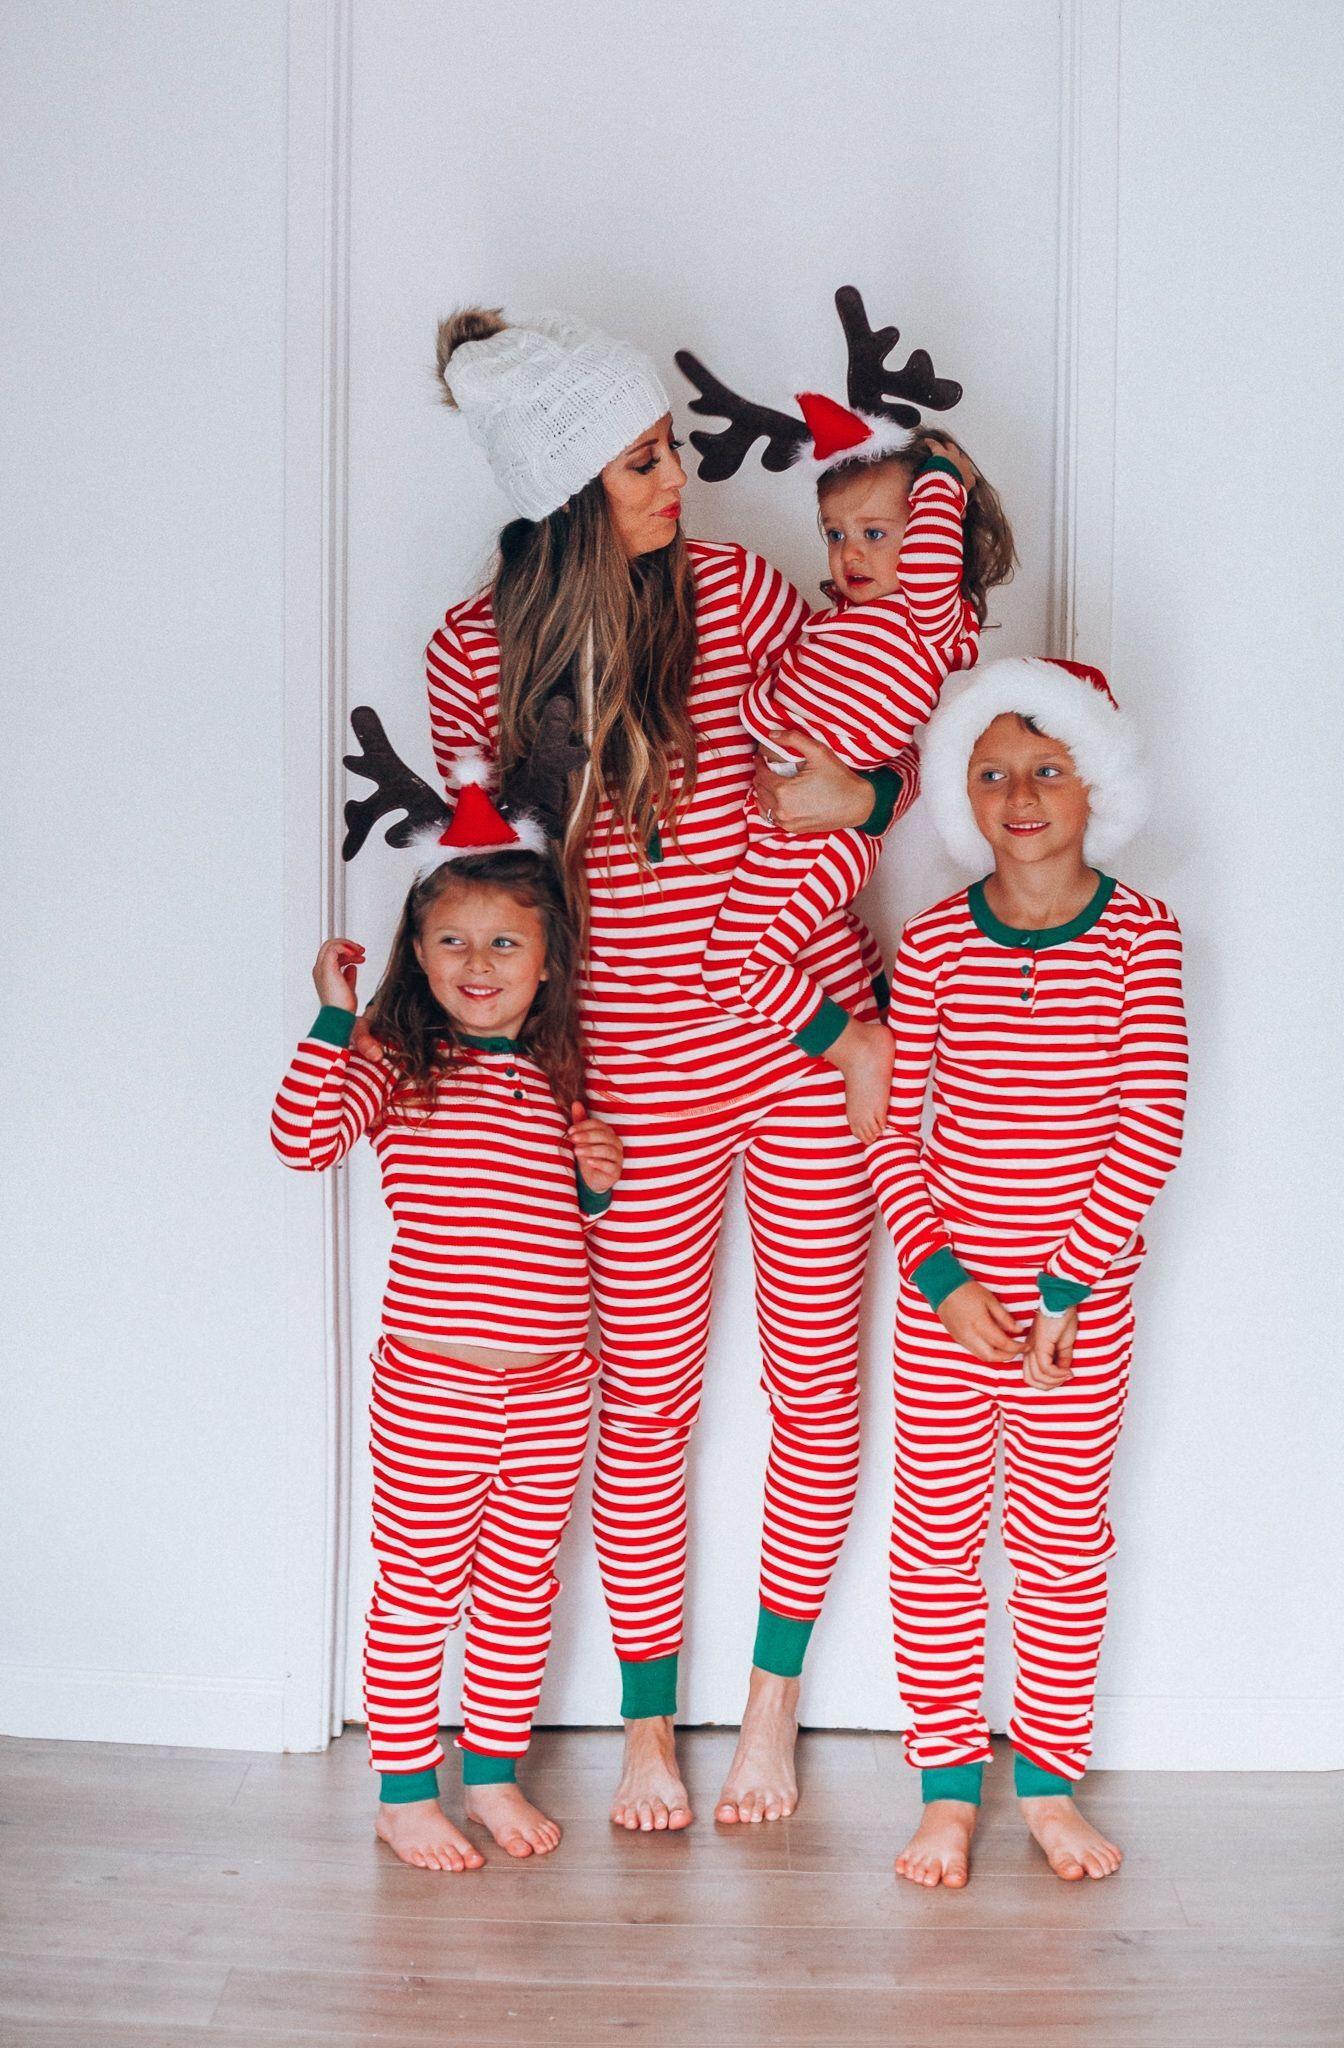 My Favorite Christmas Pajamas! Matching PJs Family